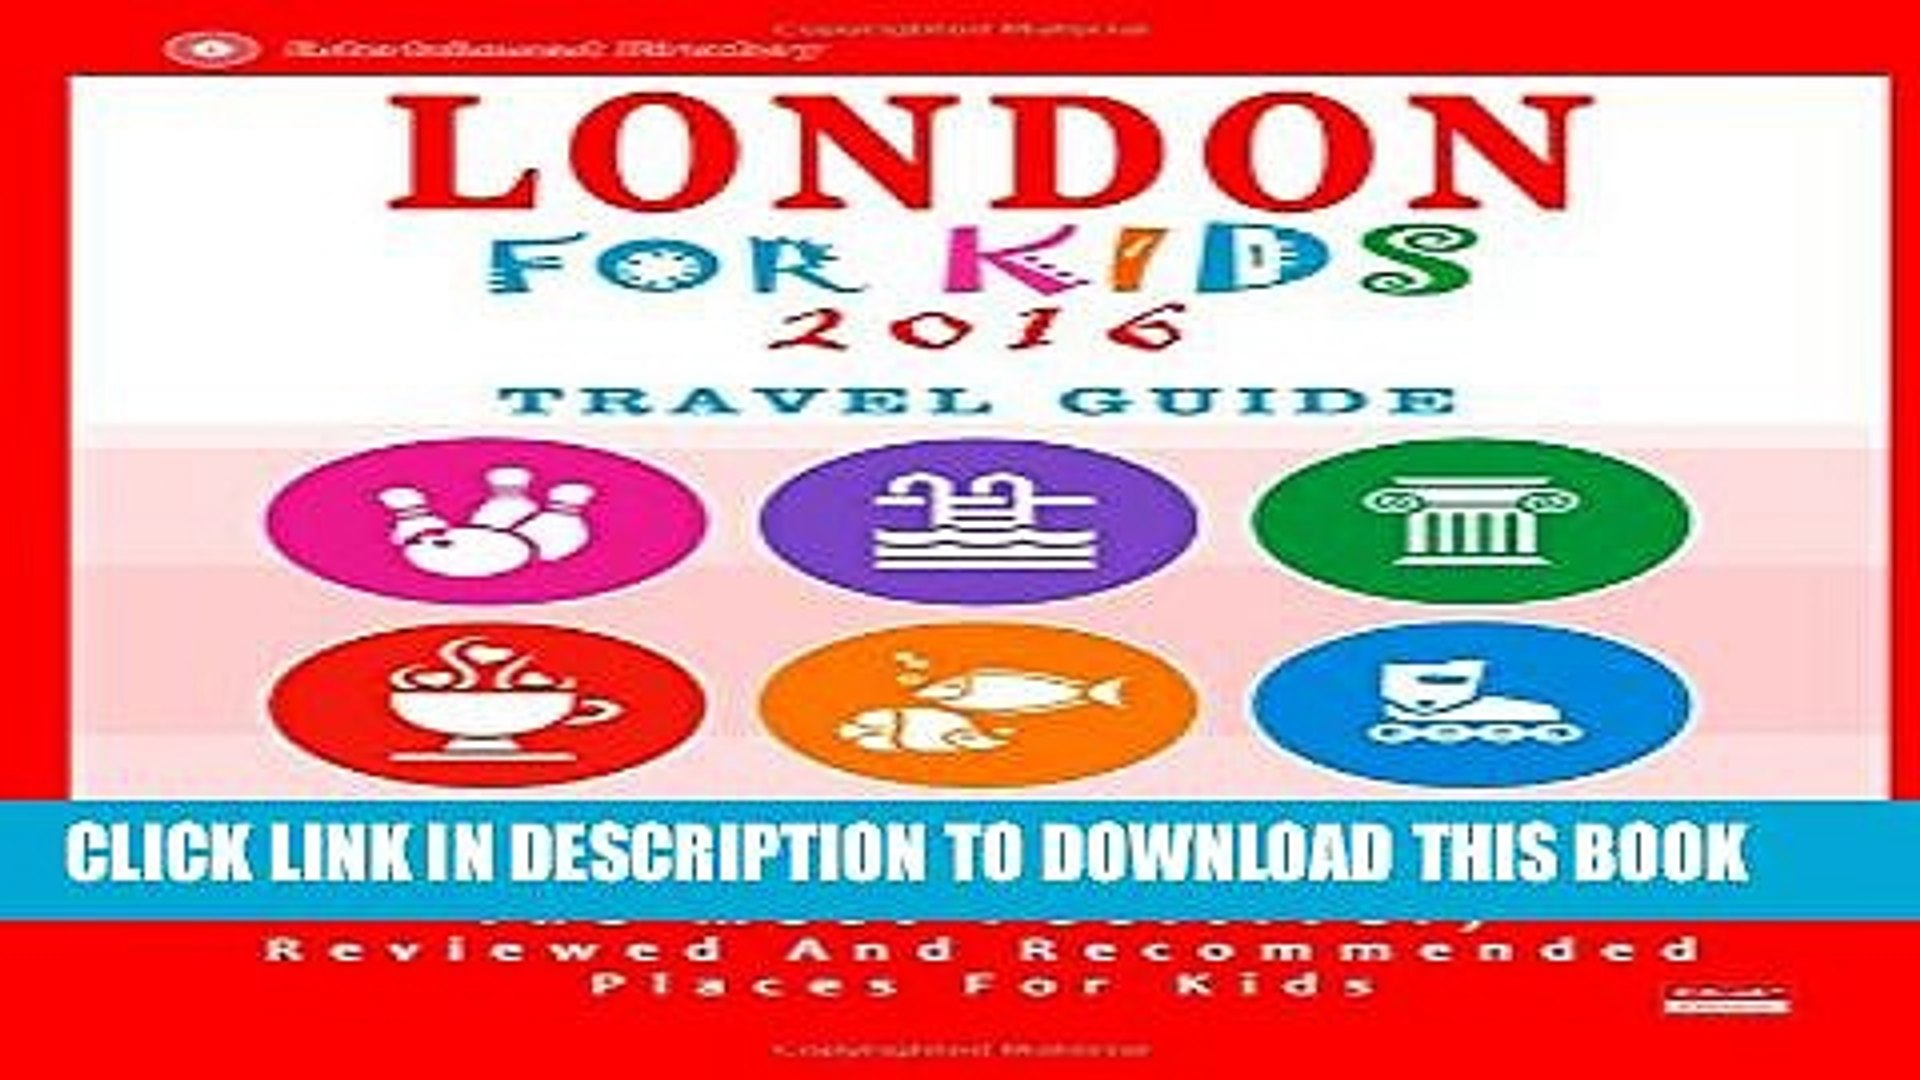 [PDF] London For Kids (Travel Guide 2016): Places for Kids to Visit in London (Kids Activities